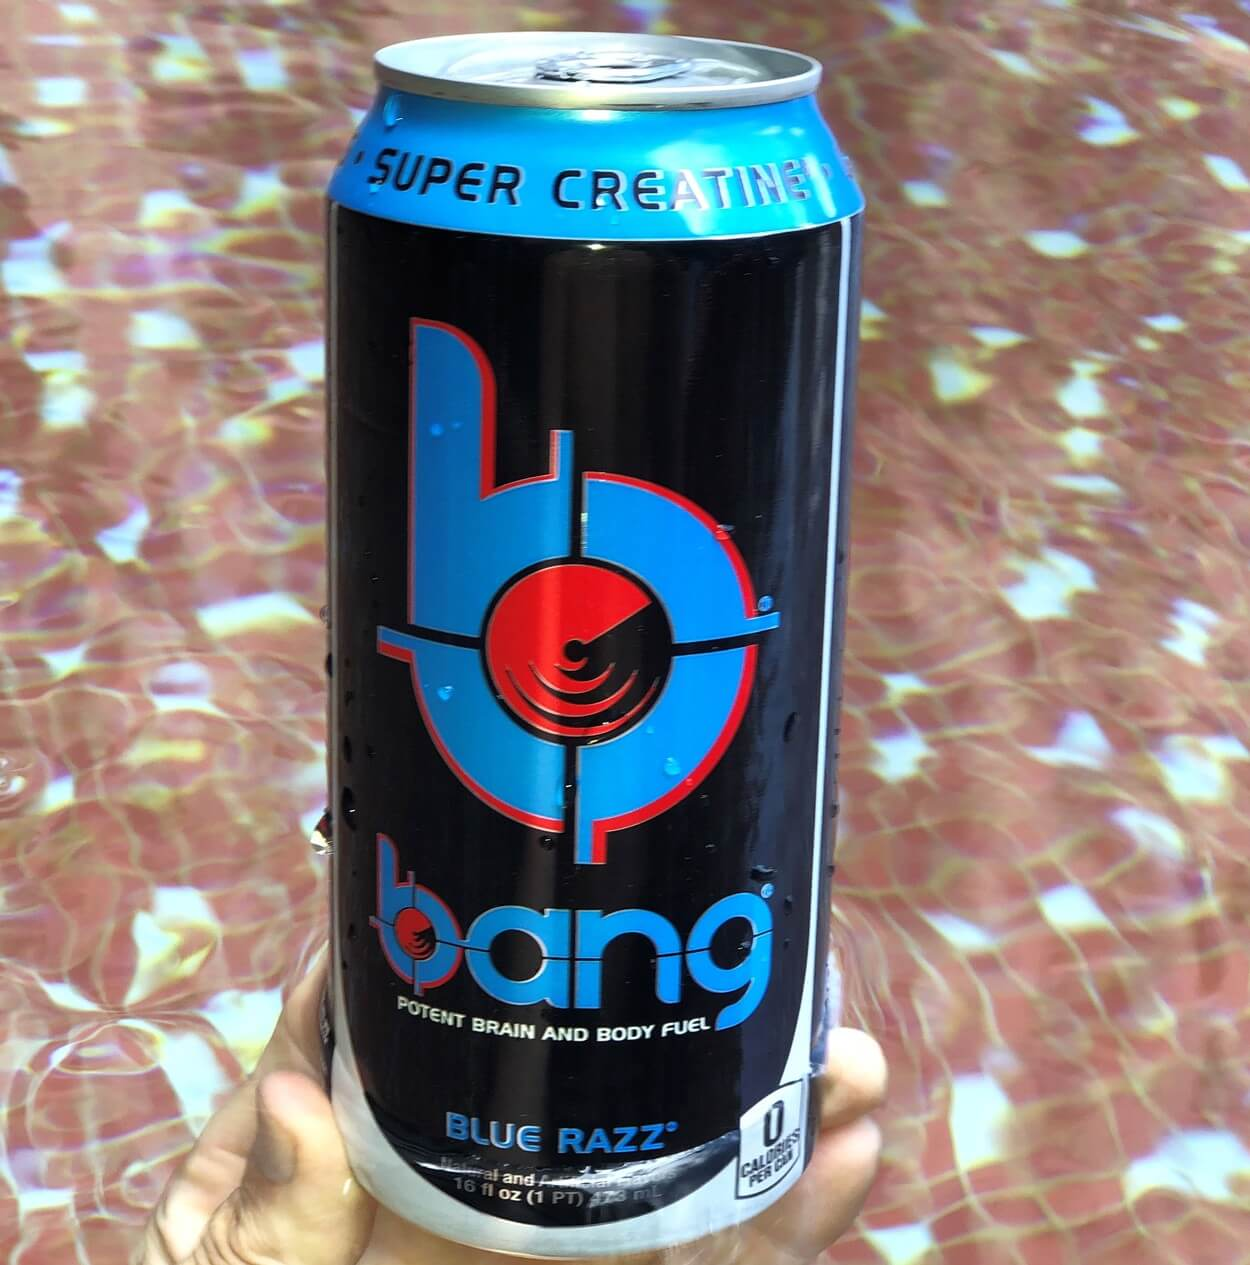 A can of Bang Blue Razz.